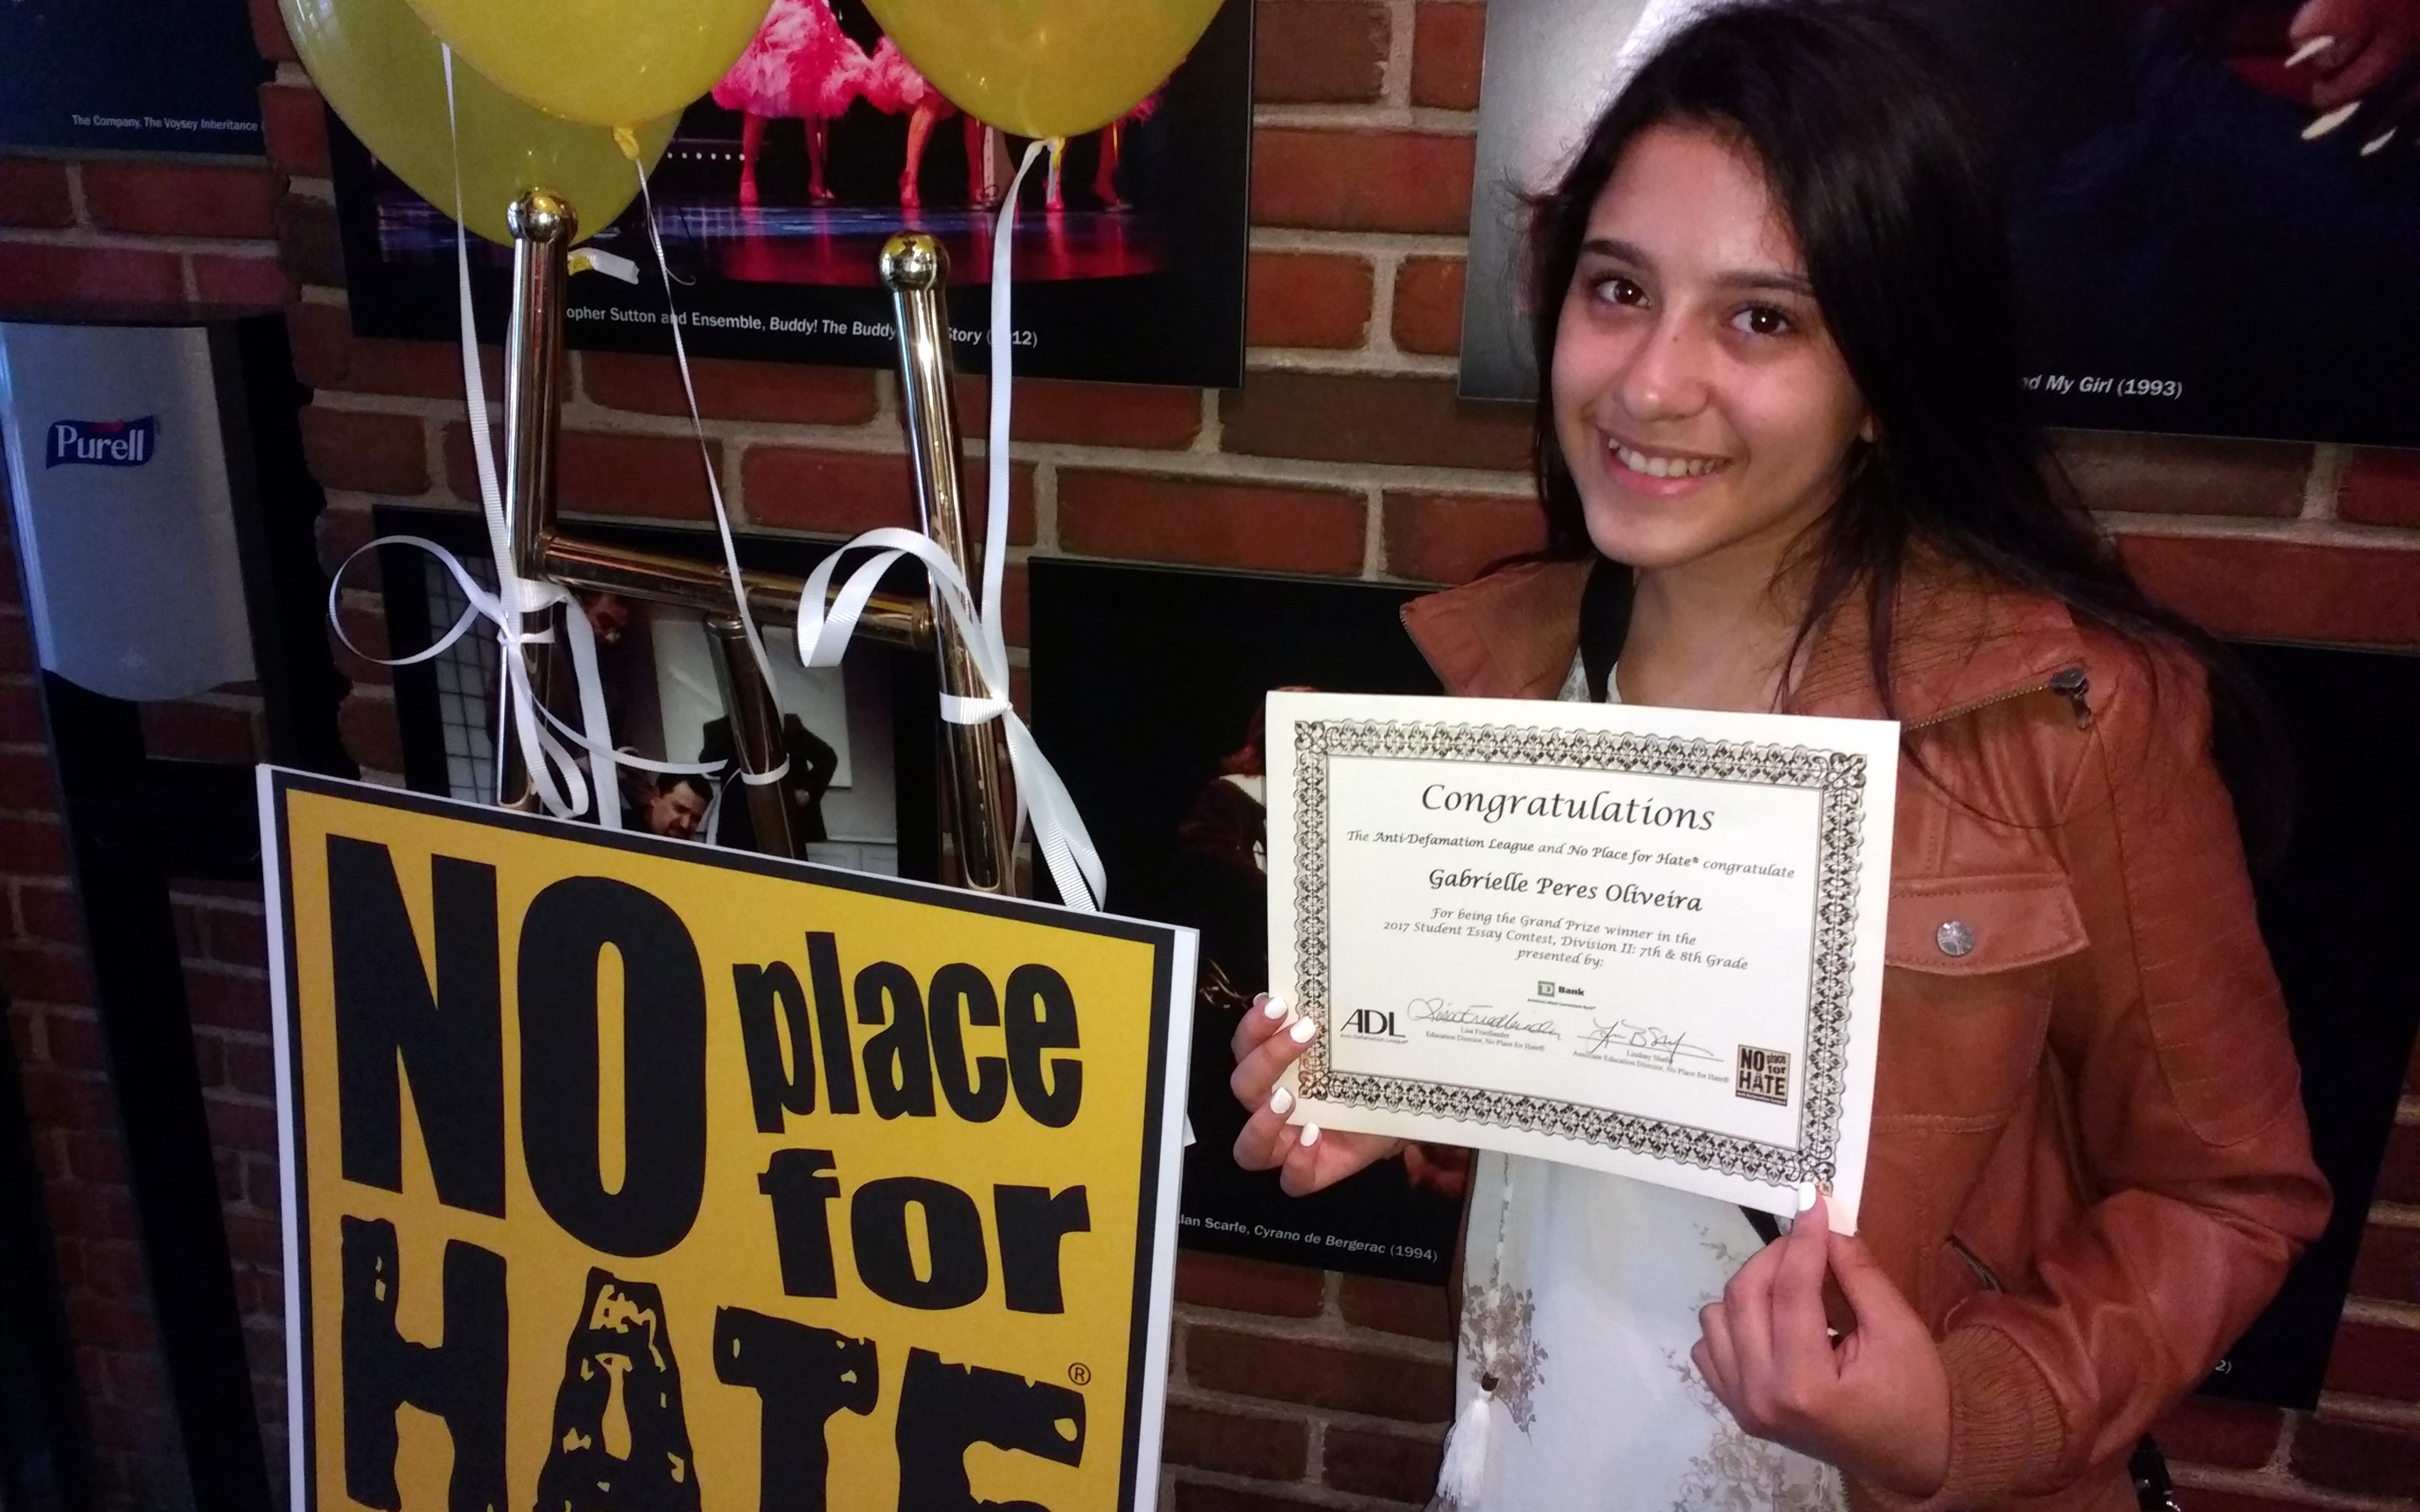 Abington Junior High School Student Wins First Place In No Place